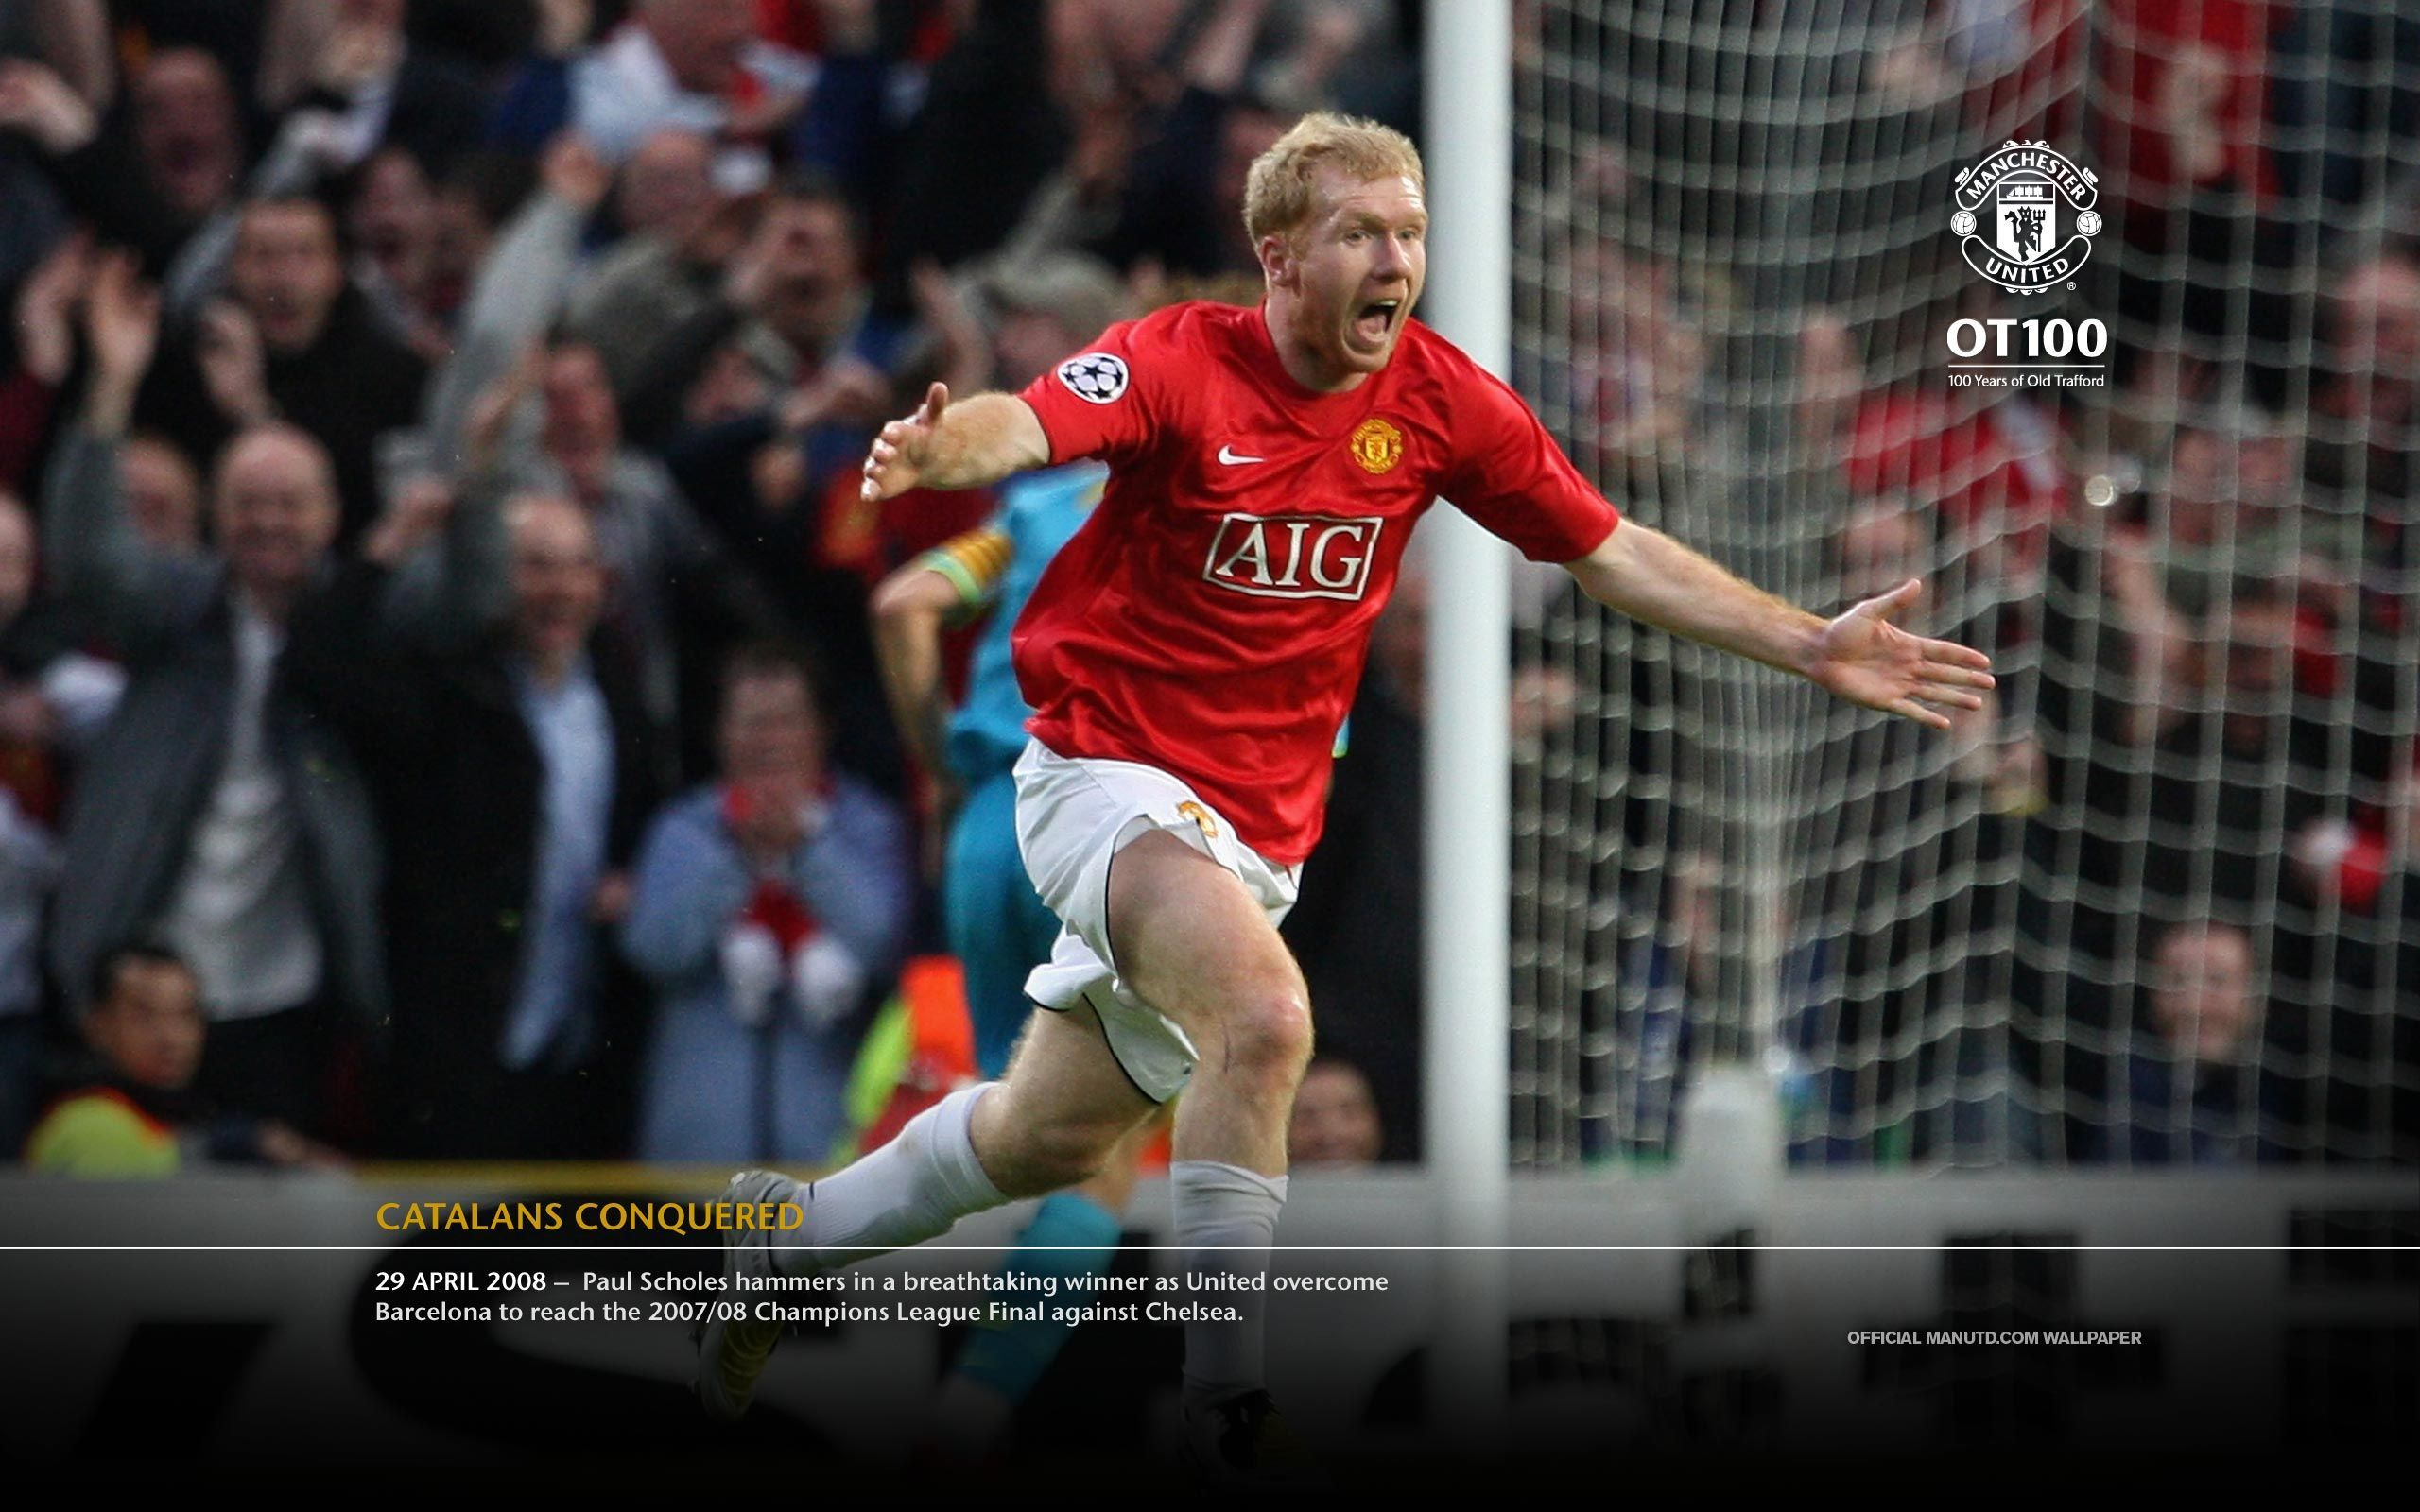 Scholes Legend With Images Manchester United Soccer News Official Manchester United Website